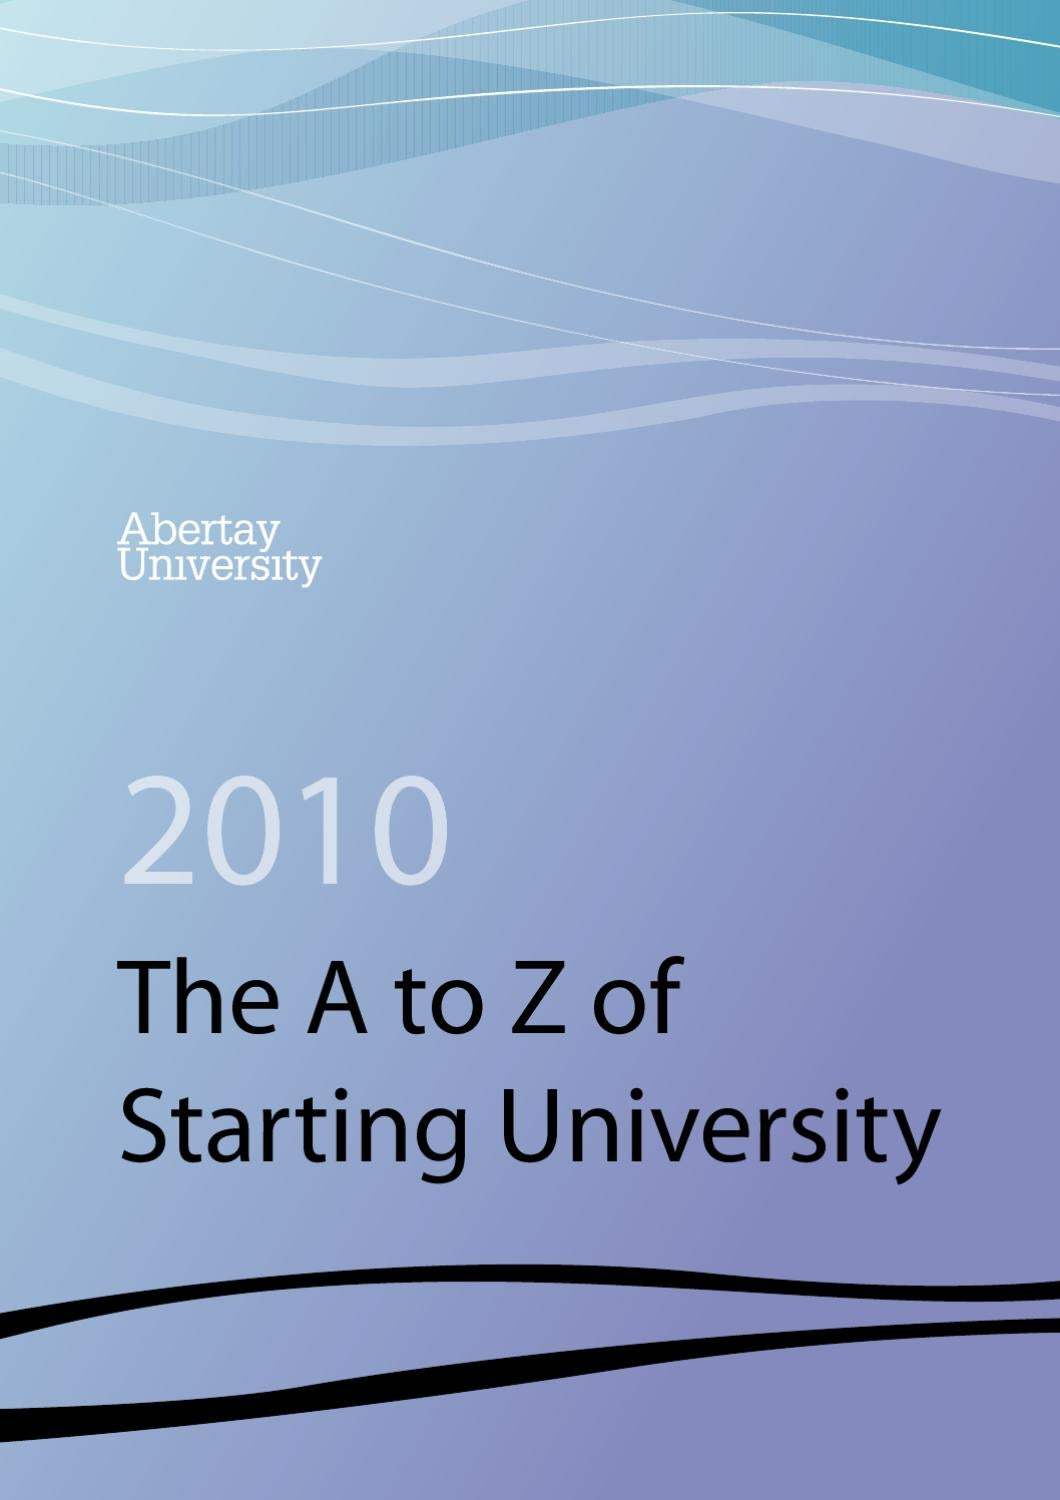 abertay coursework cover sheet